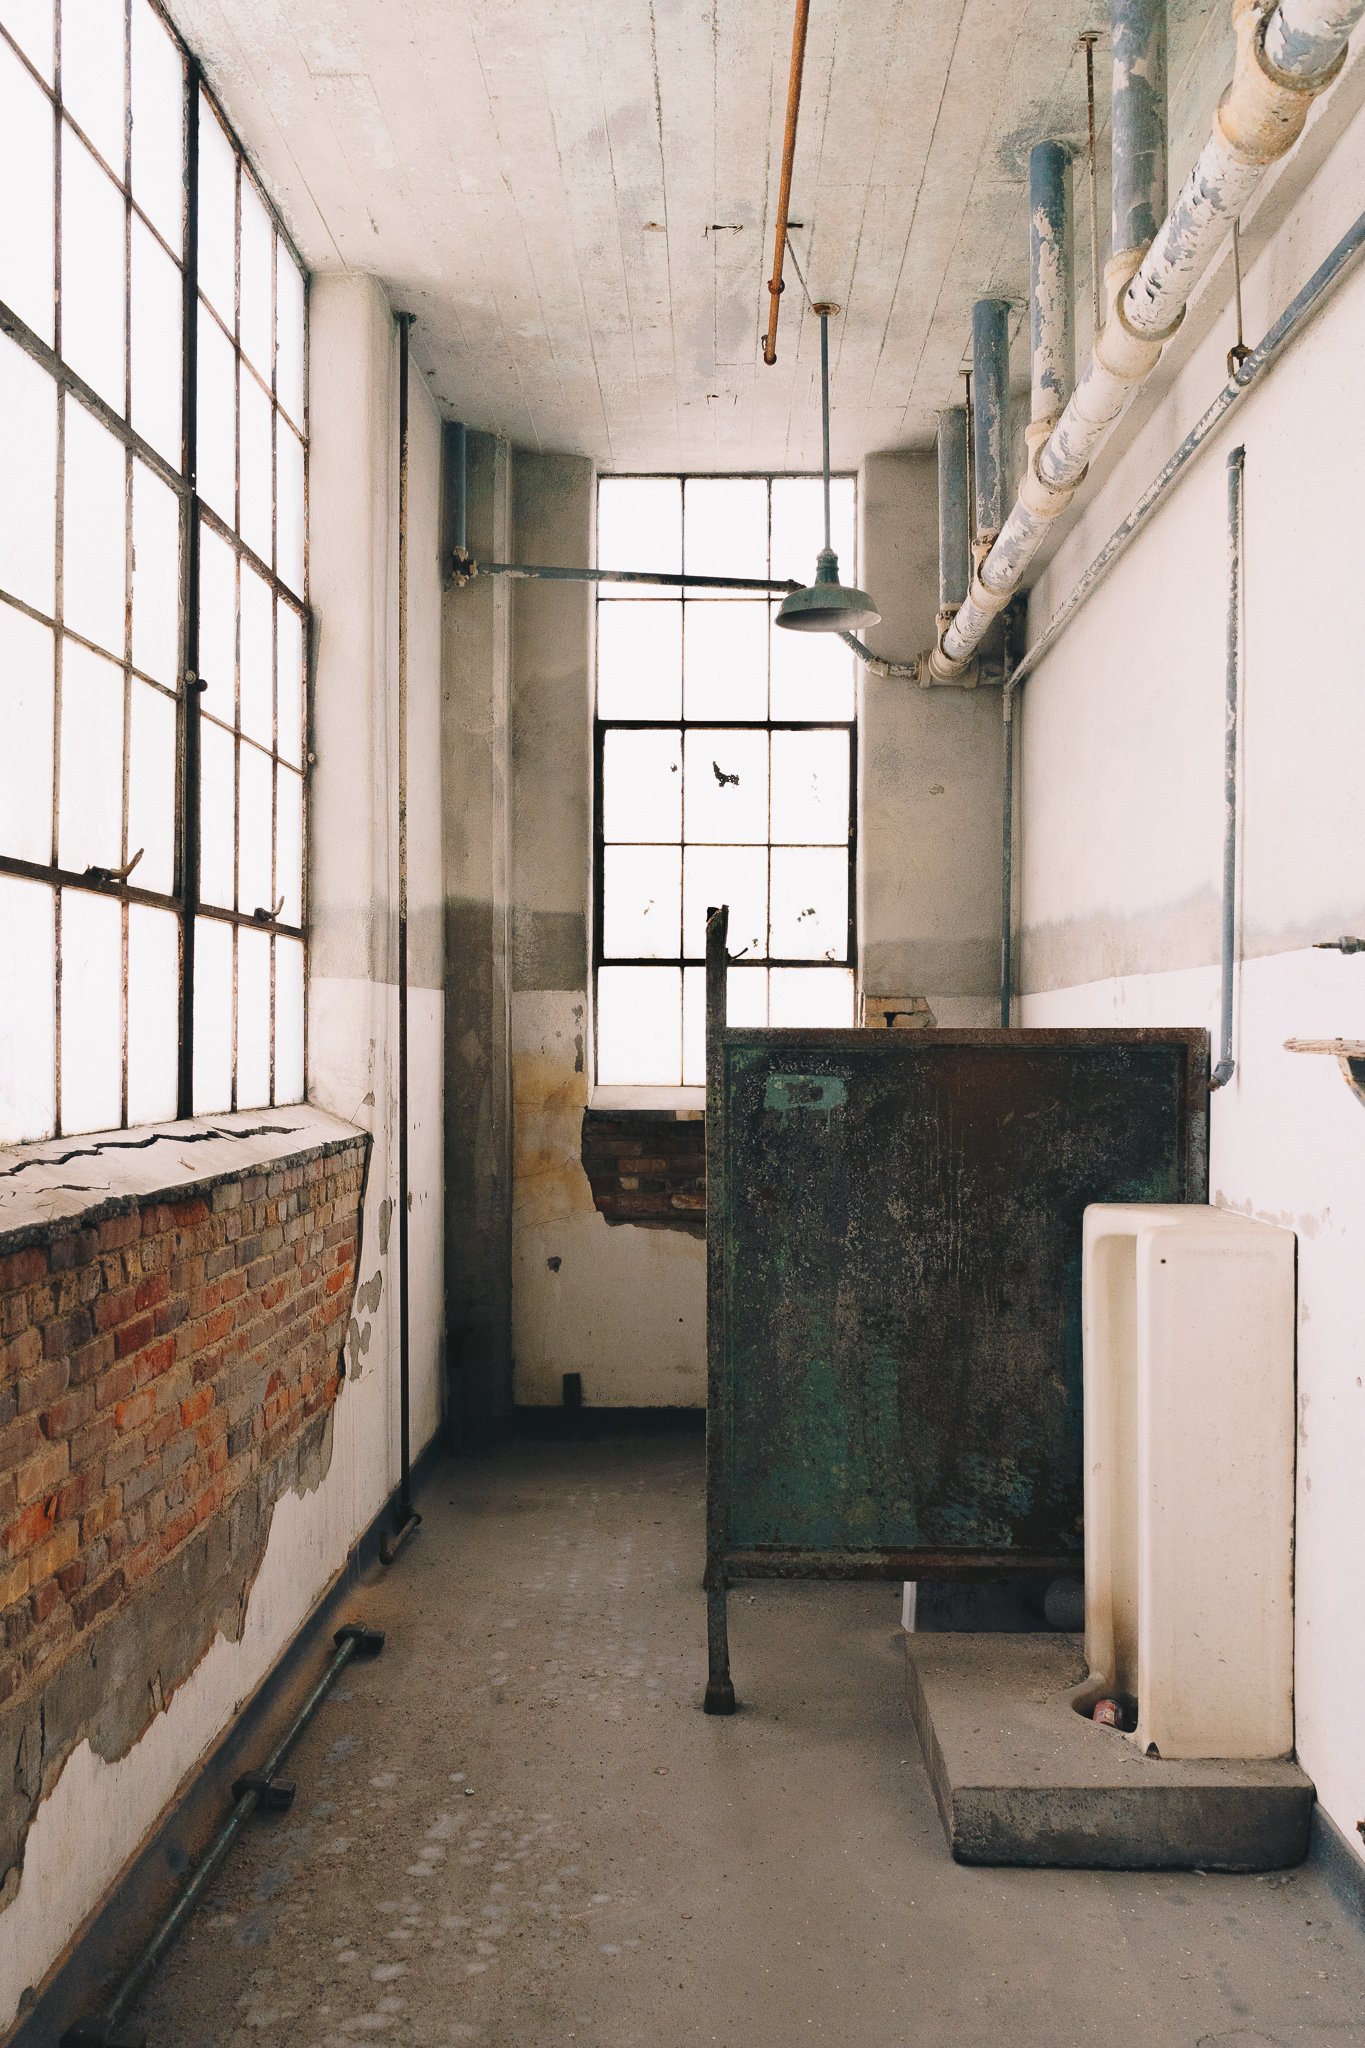 Studebaker Building 84 No. 1   A February 2018 photograph of a restroom in Studebaker Building 84, the main assembly plant of the former automaker's sprawling South Bend Plant 1.